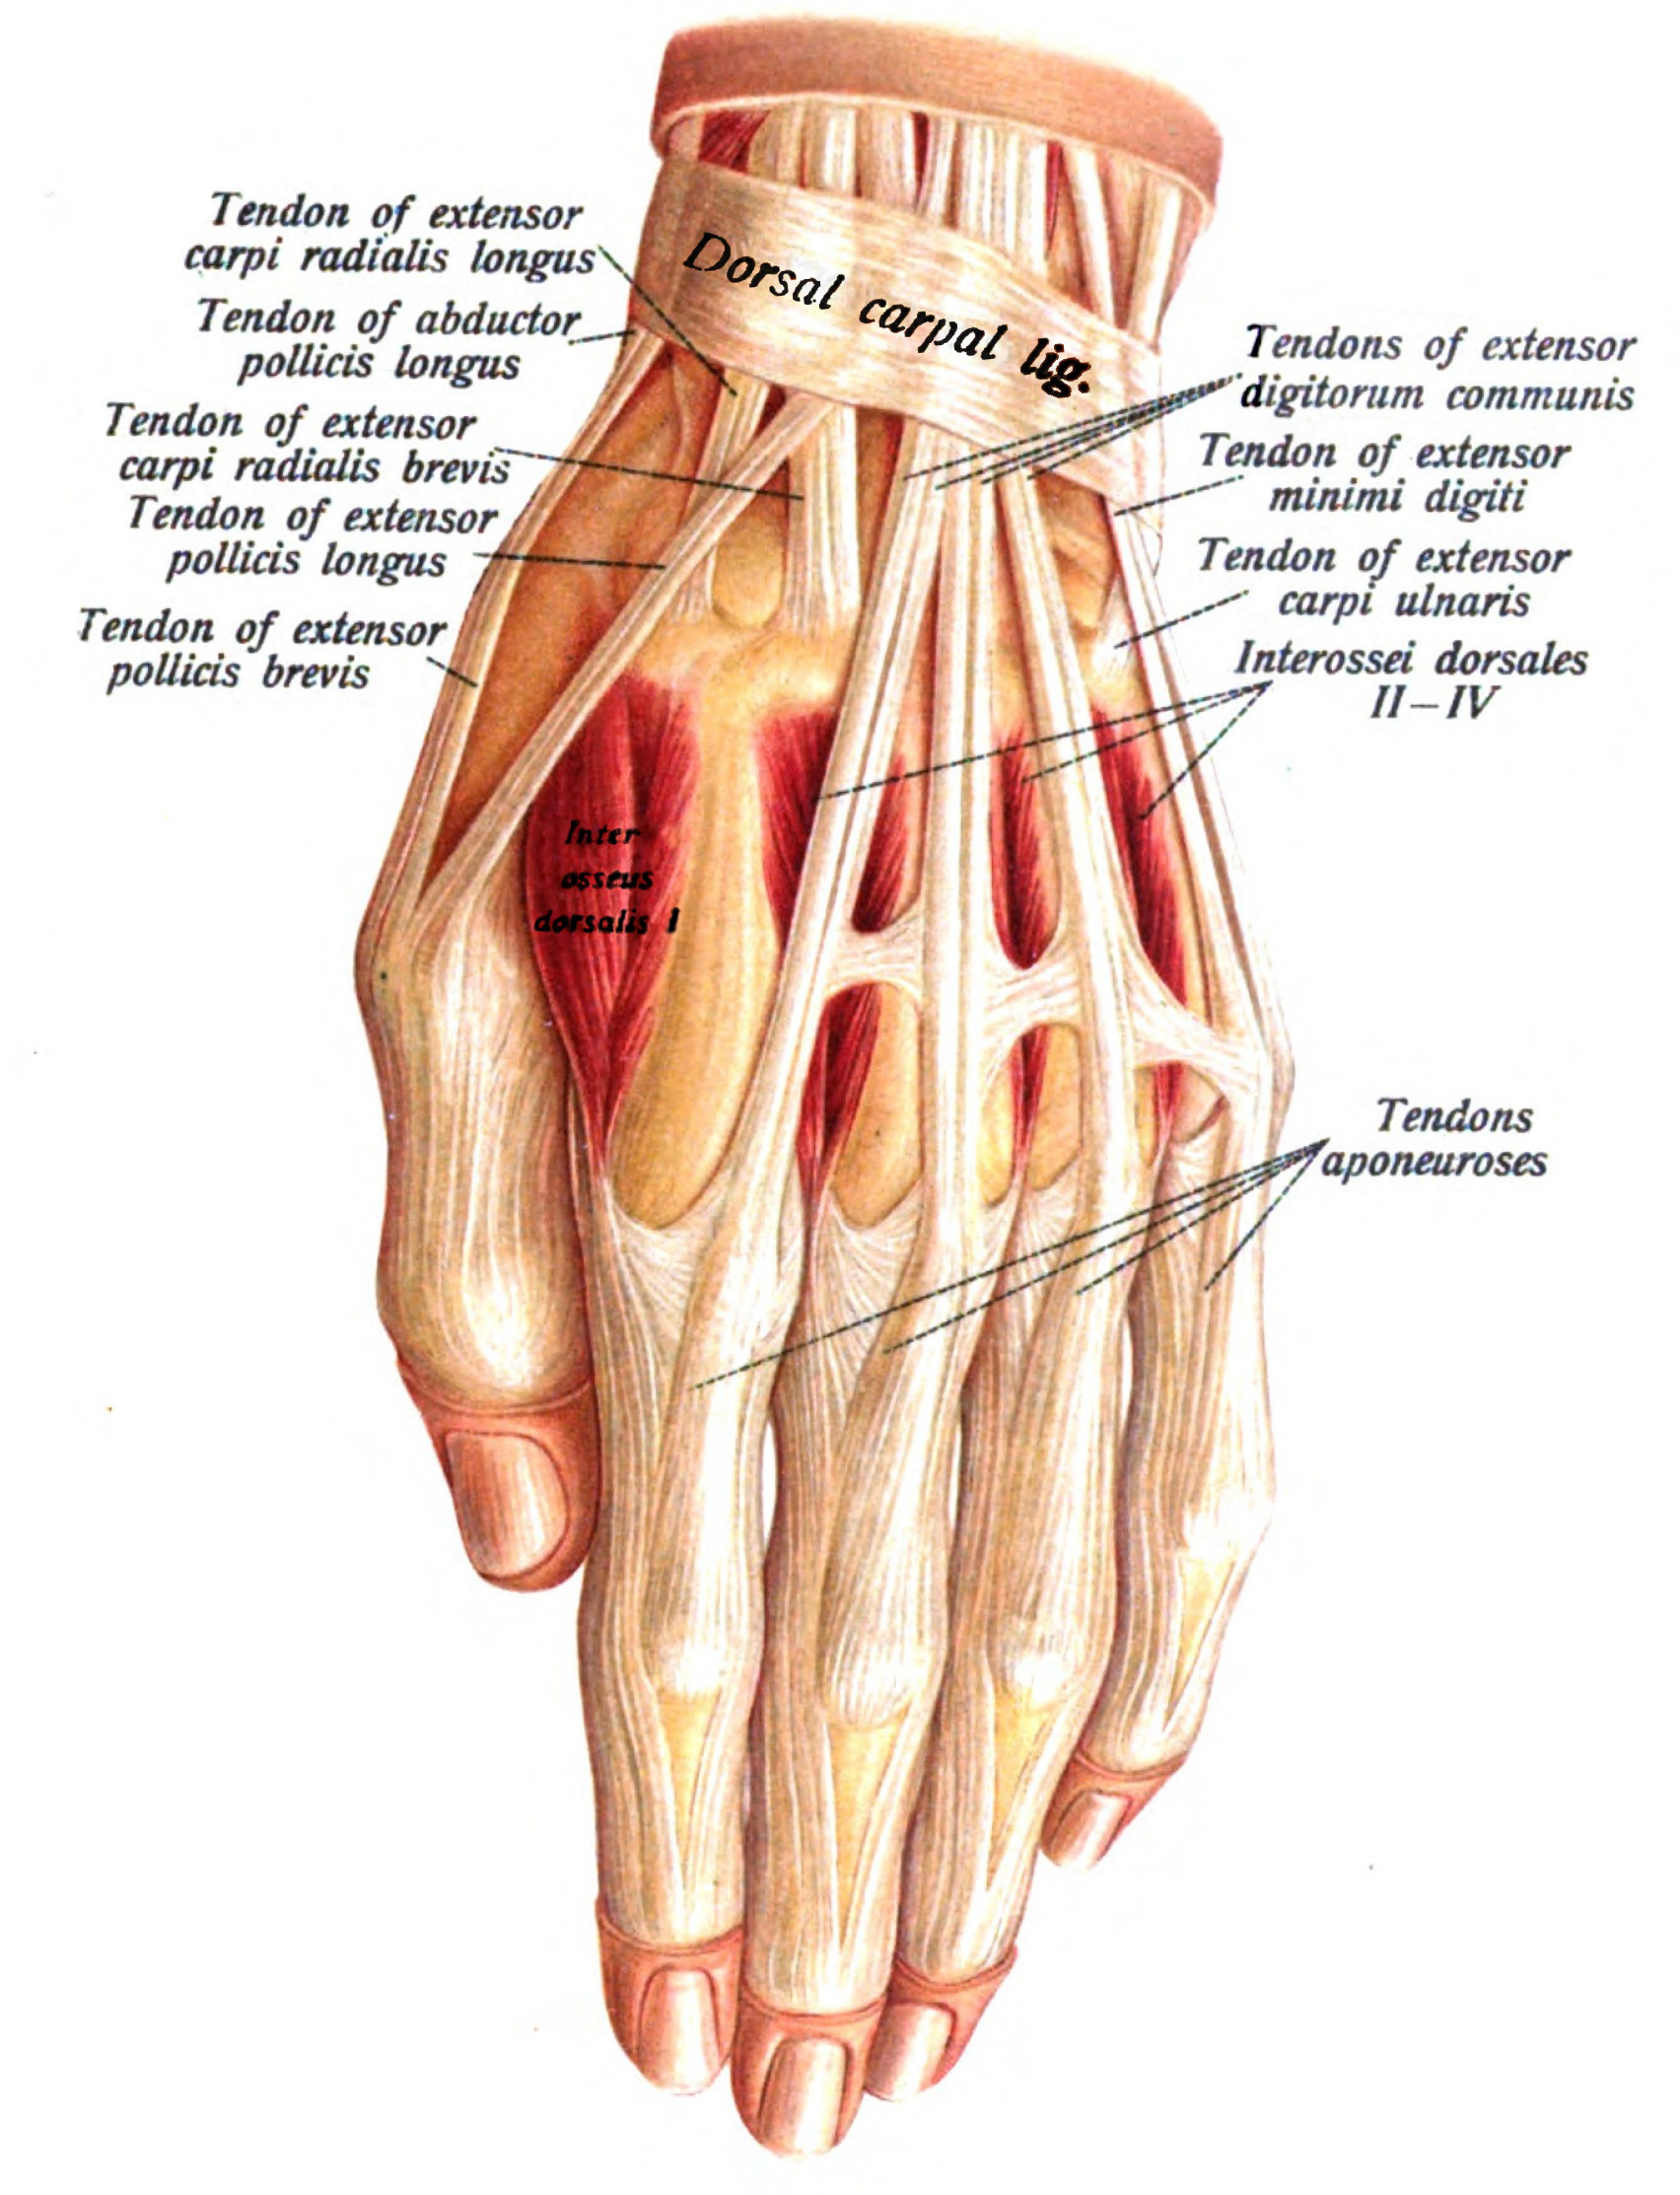 Filehand Anatomyg Wikipedia